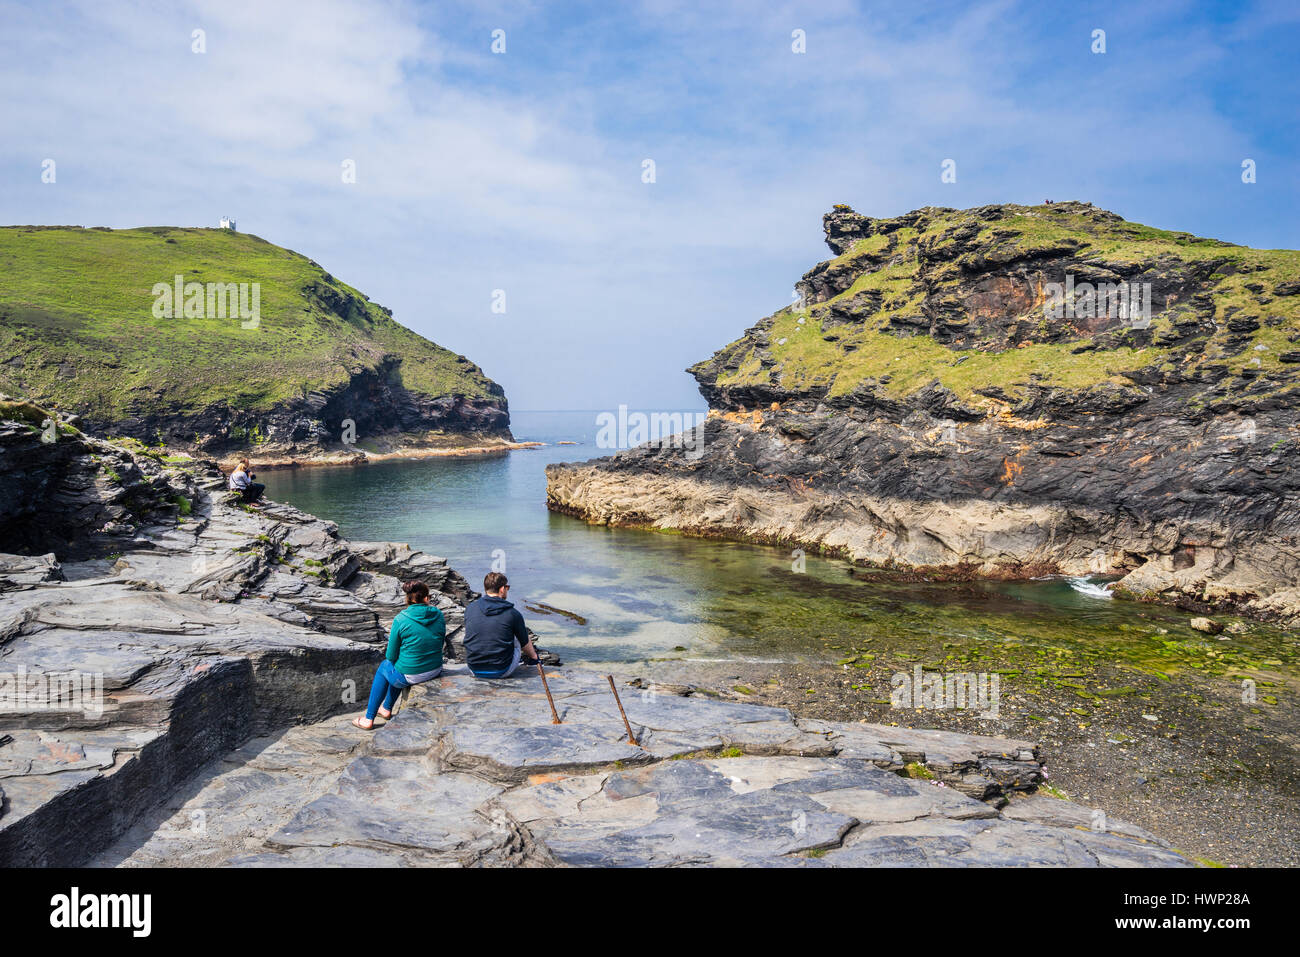 United Kingdom, South West England, Conwall, view of the entrance to Boscastle Harbour flanked by Willapark promontory - Stock Image